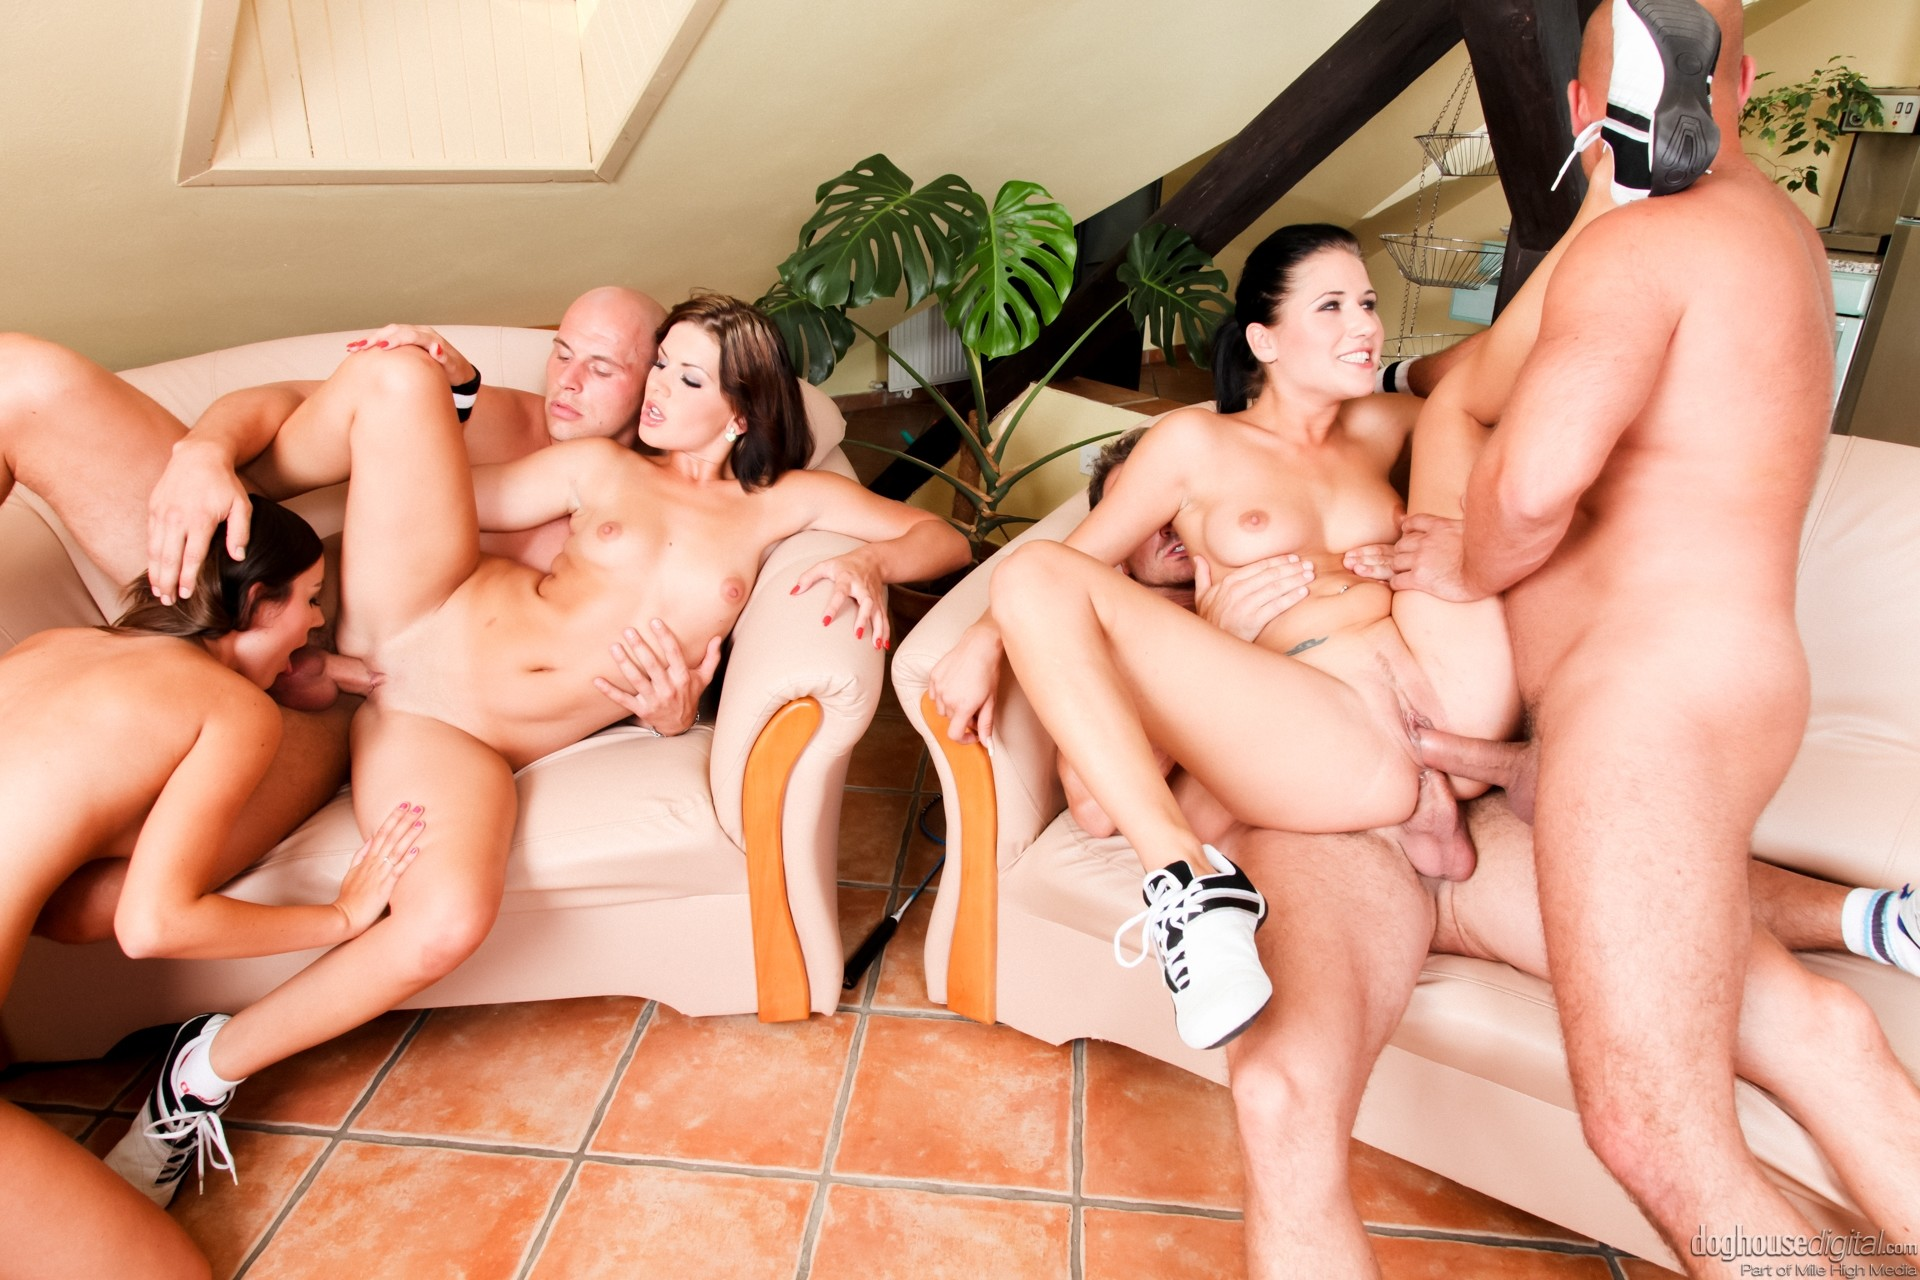 Myveryfirsttime living out her fantasy with first group sex with friend